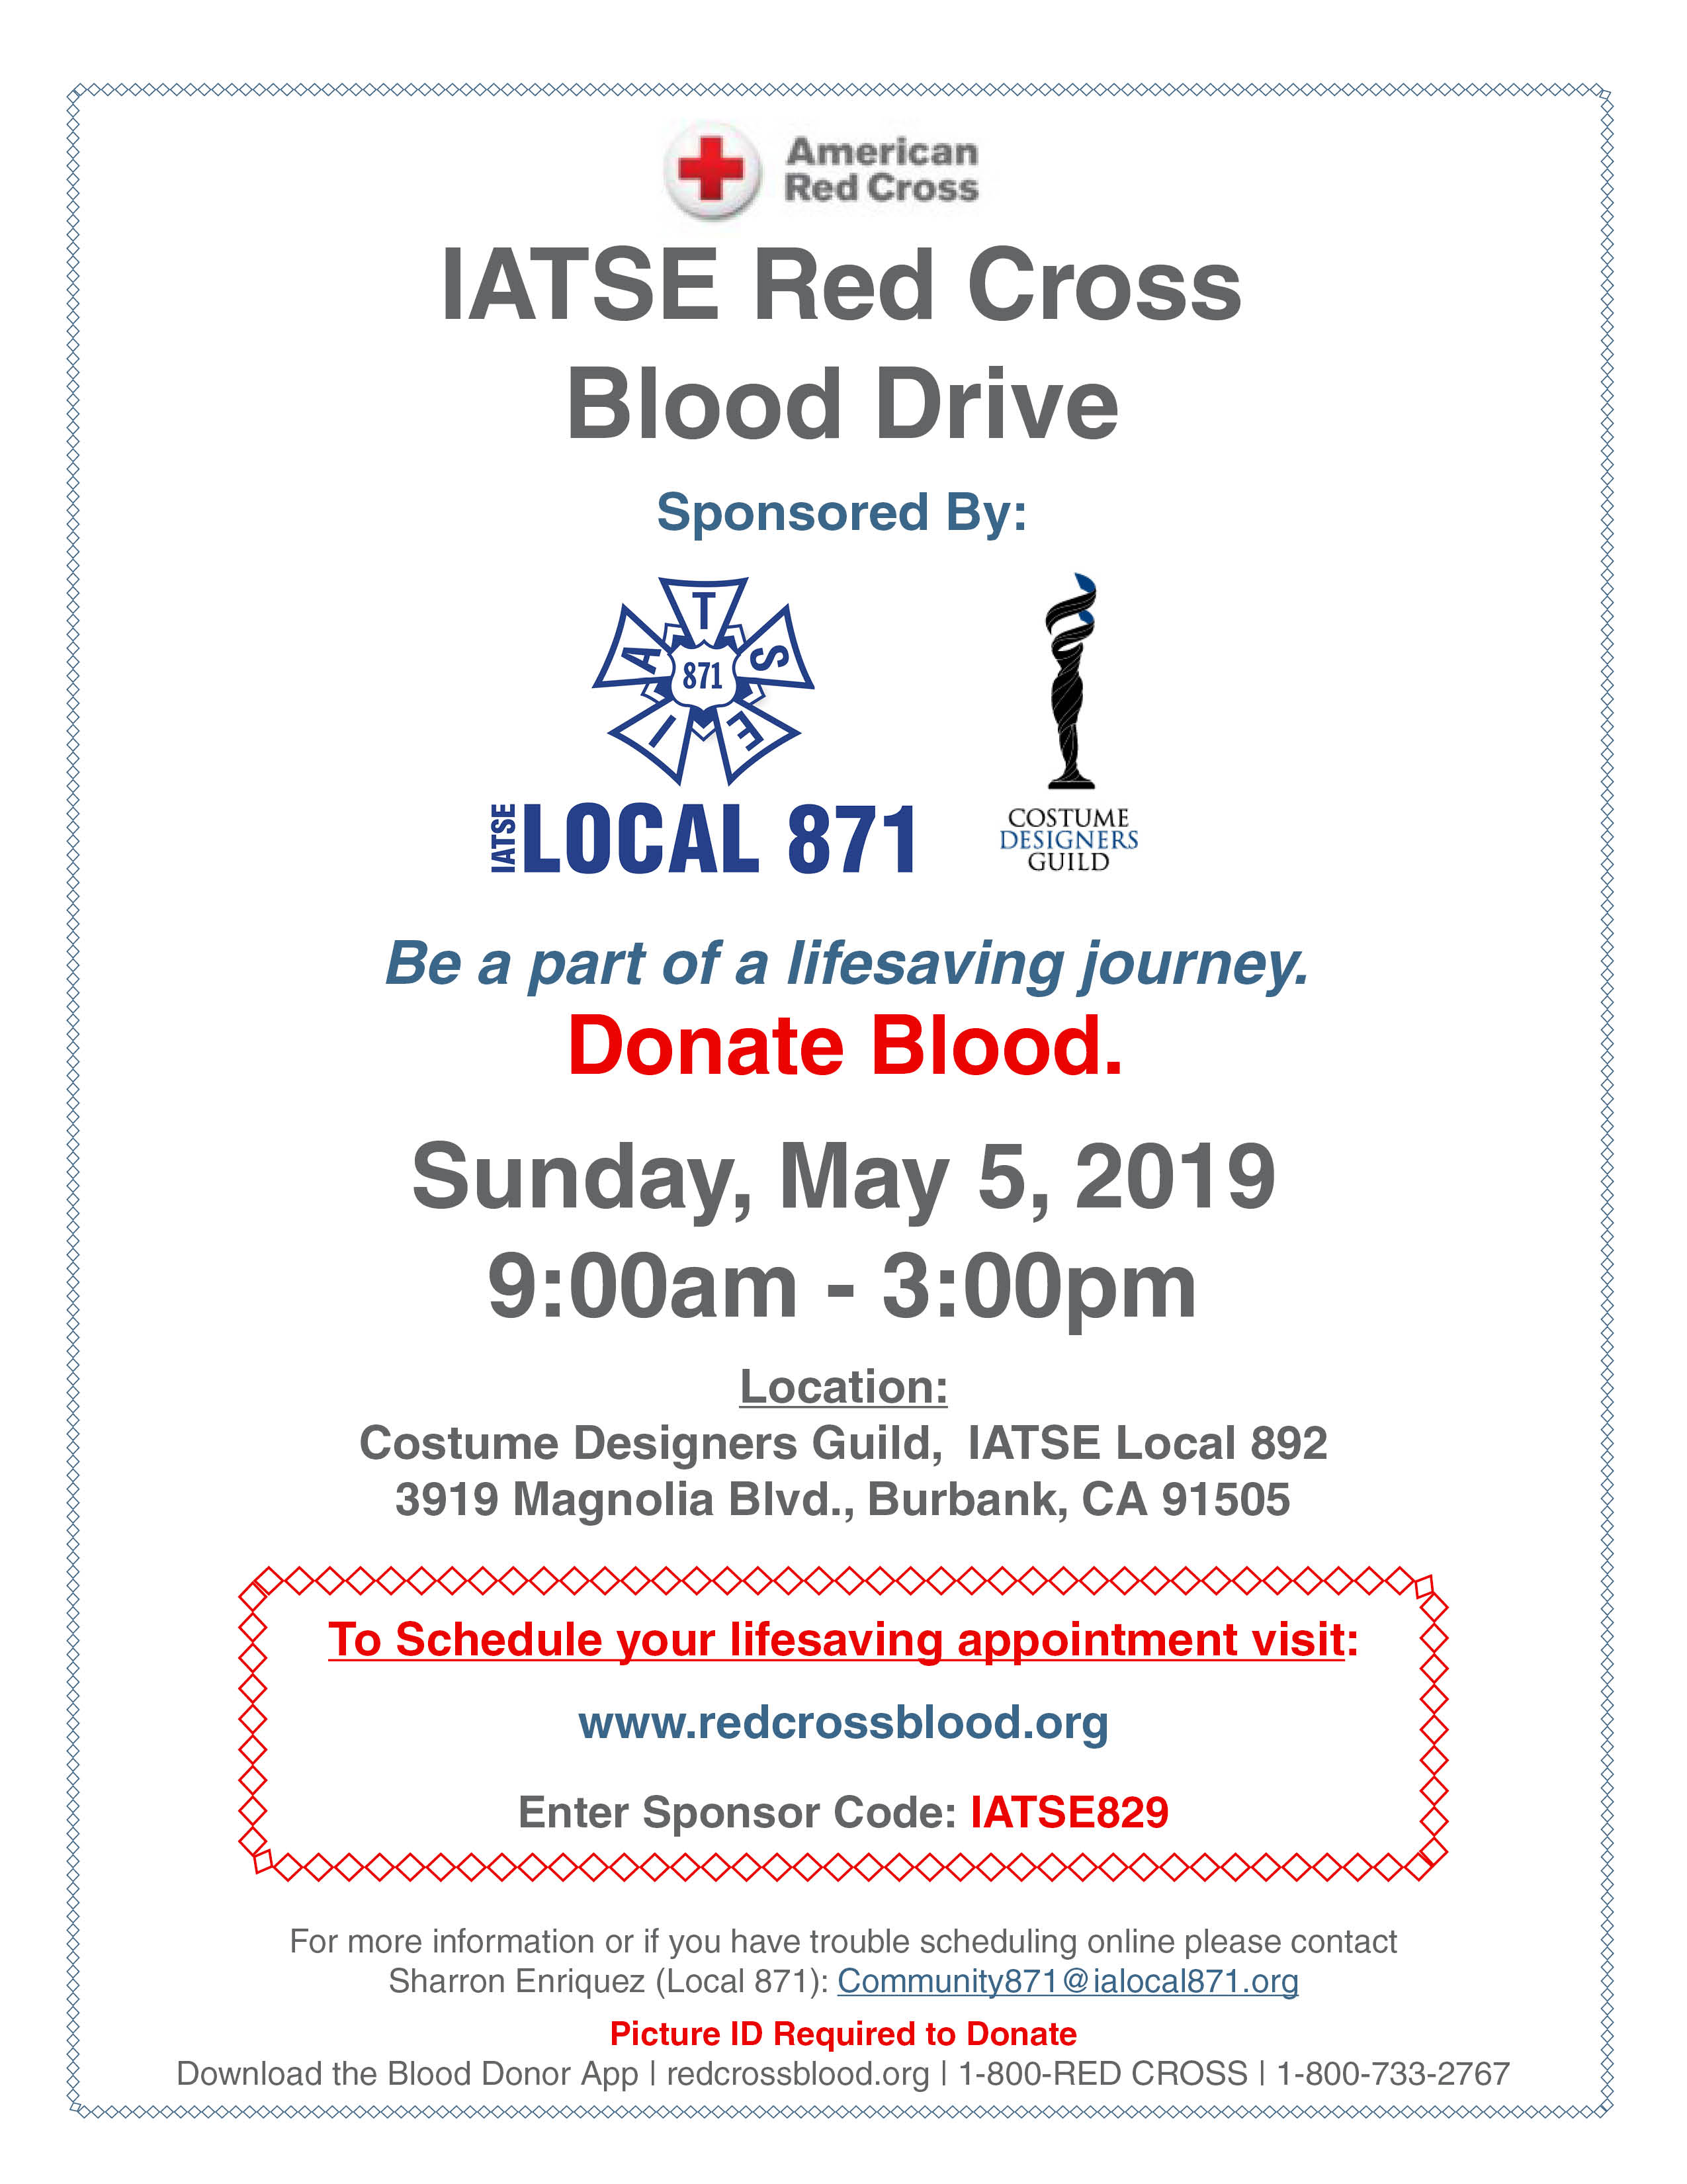 IATSE Red Cross Blood Drive